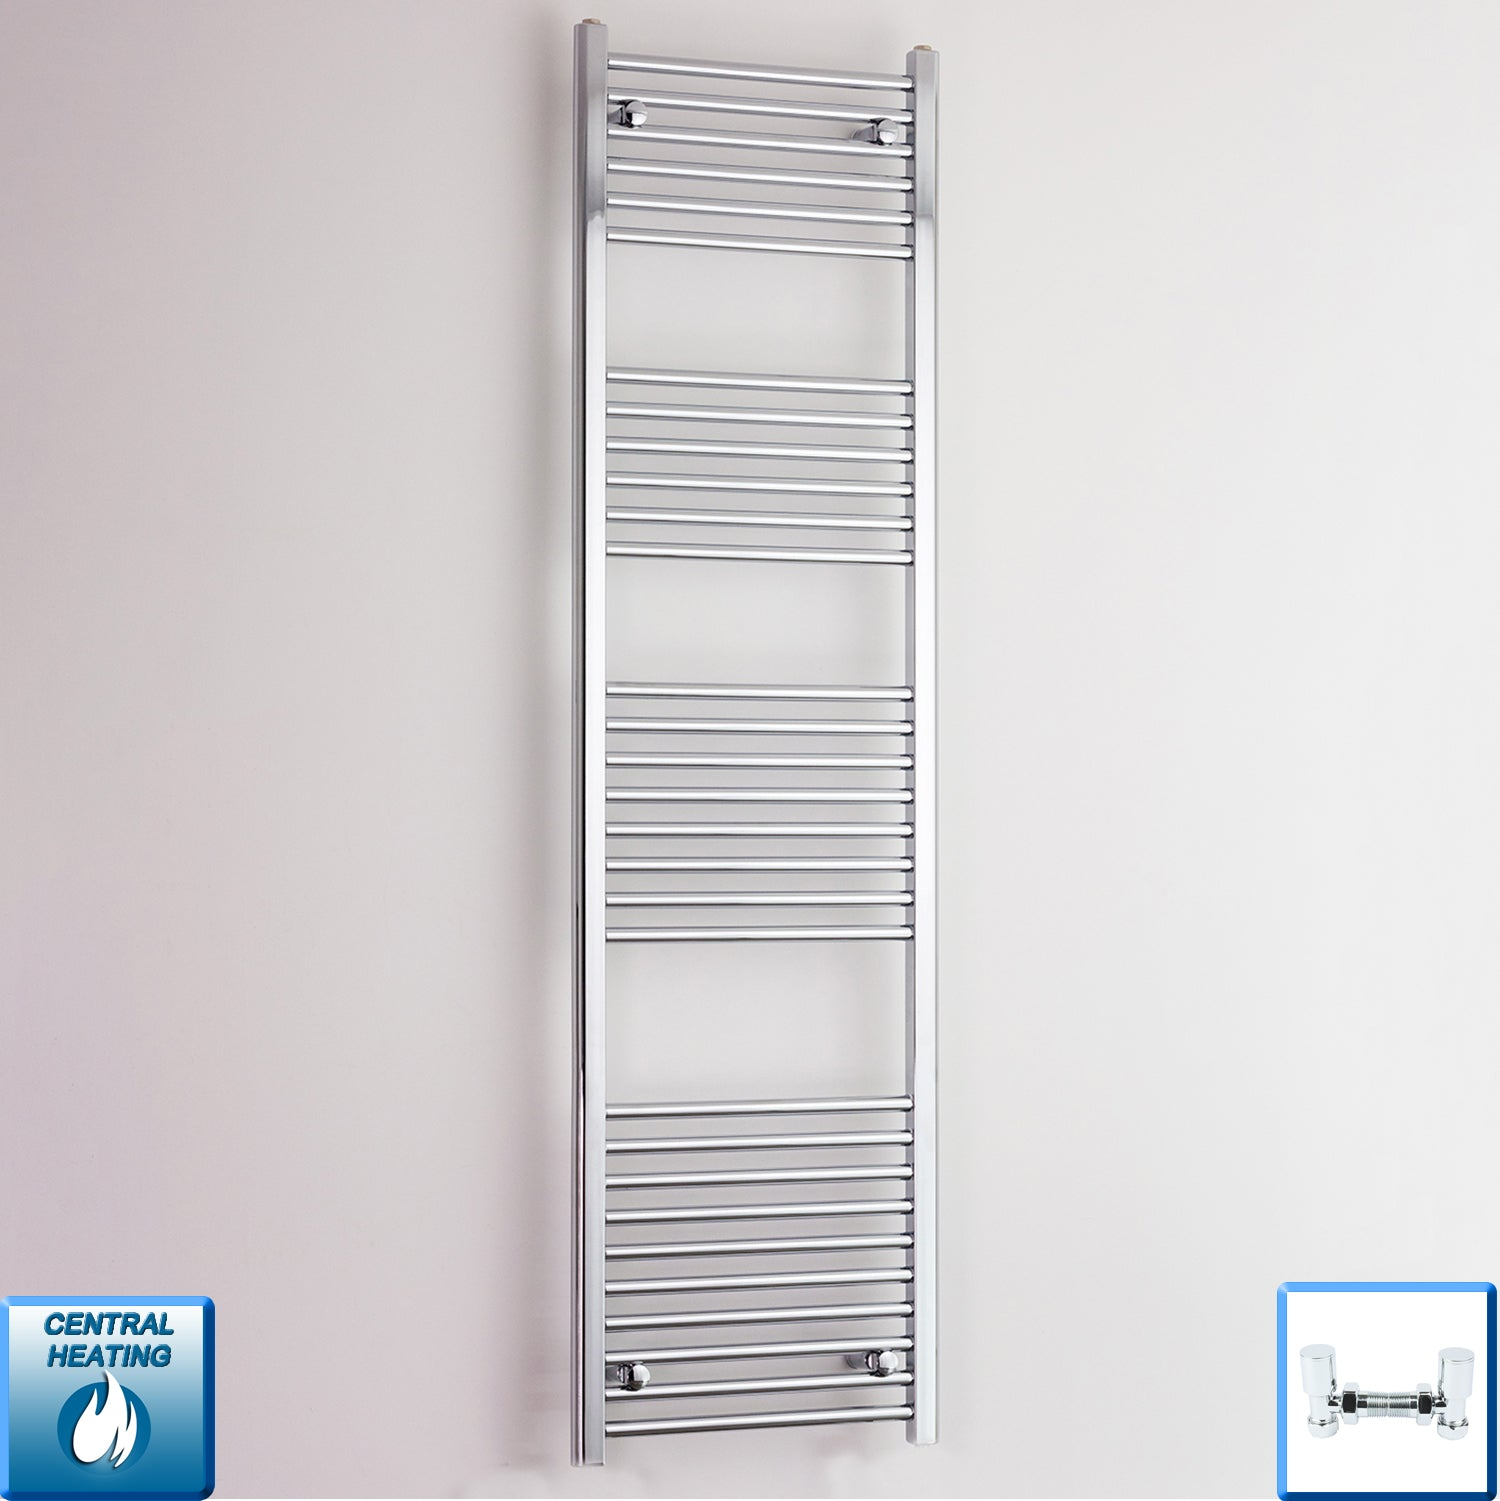 600mm Wide 1800mm High Curved Chrome Heated Towel Rail Radiator HTR,With Angled Valve